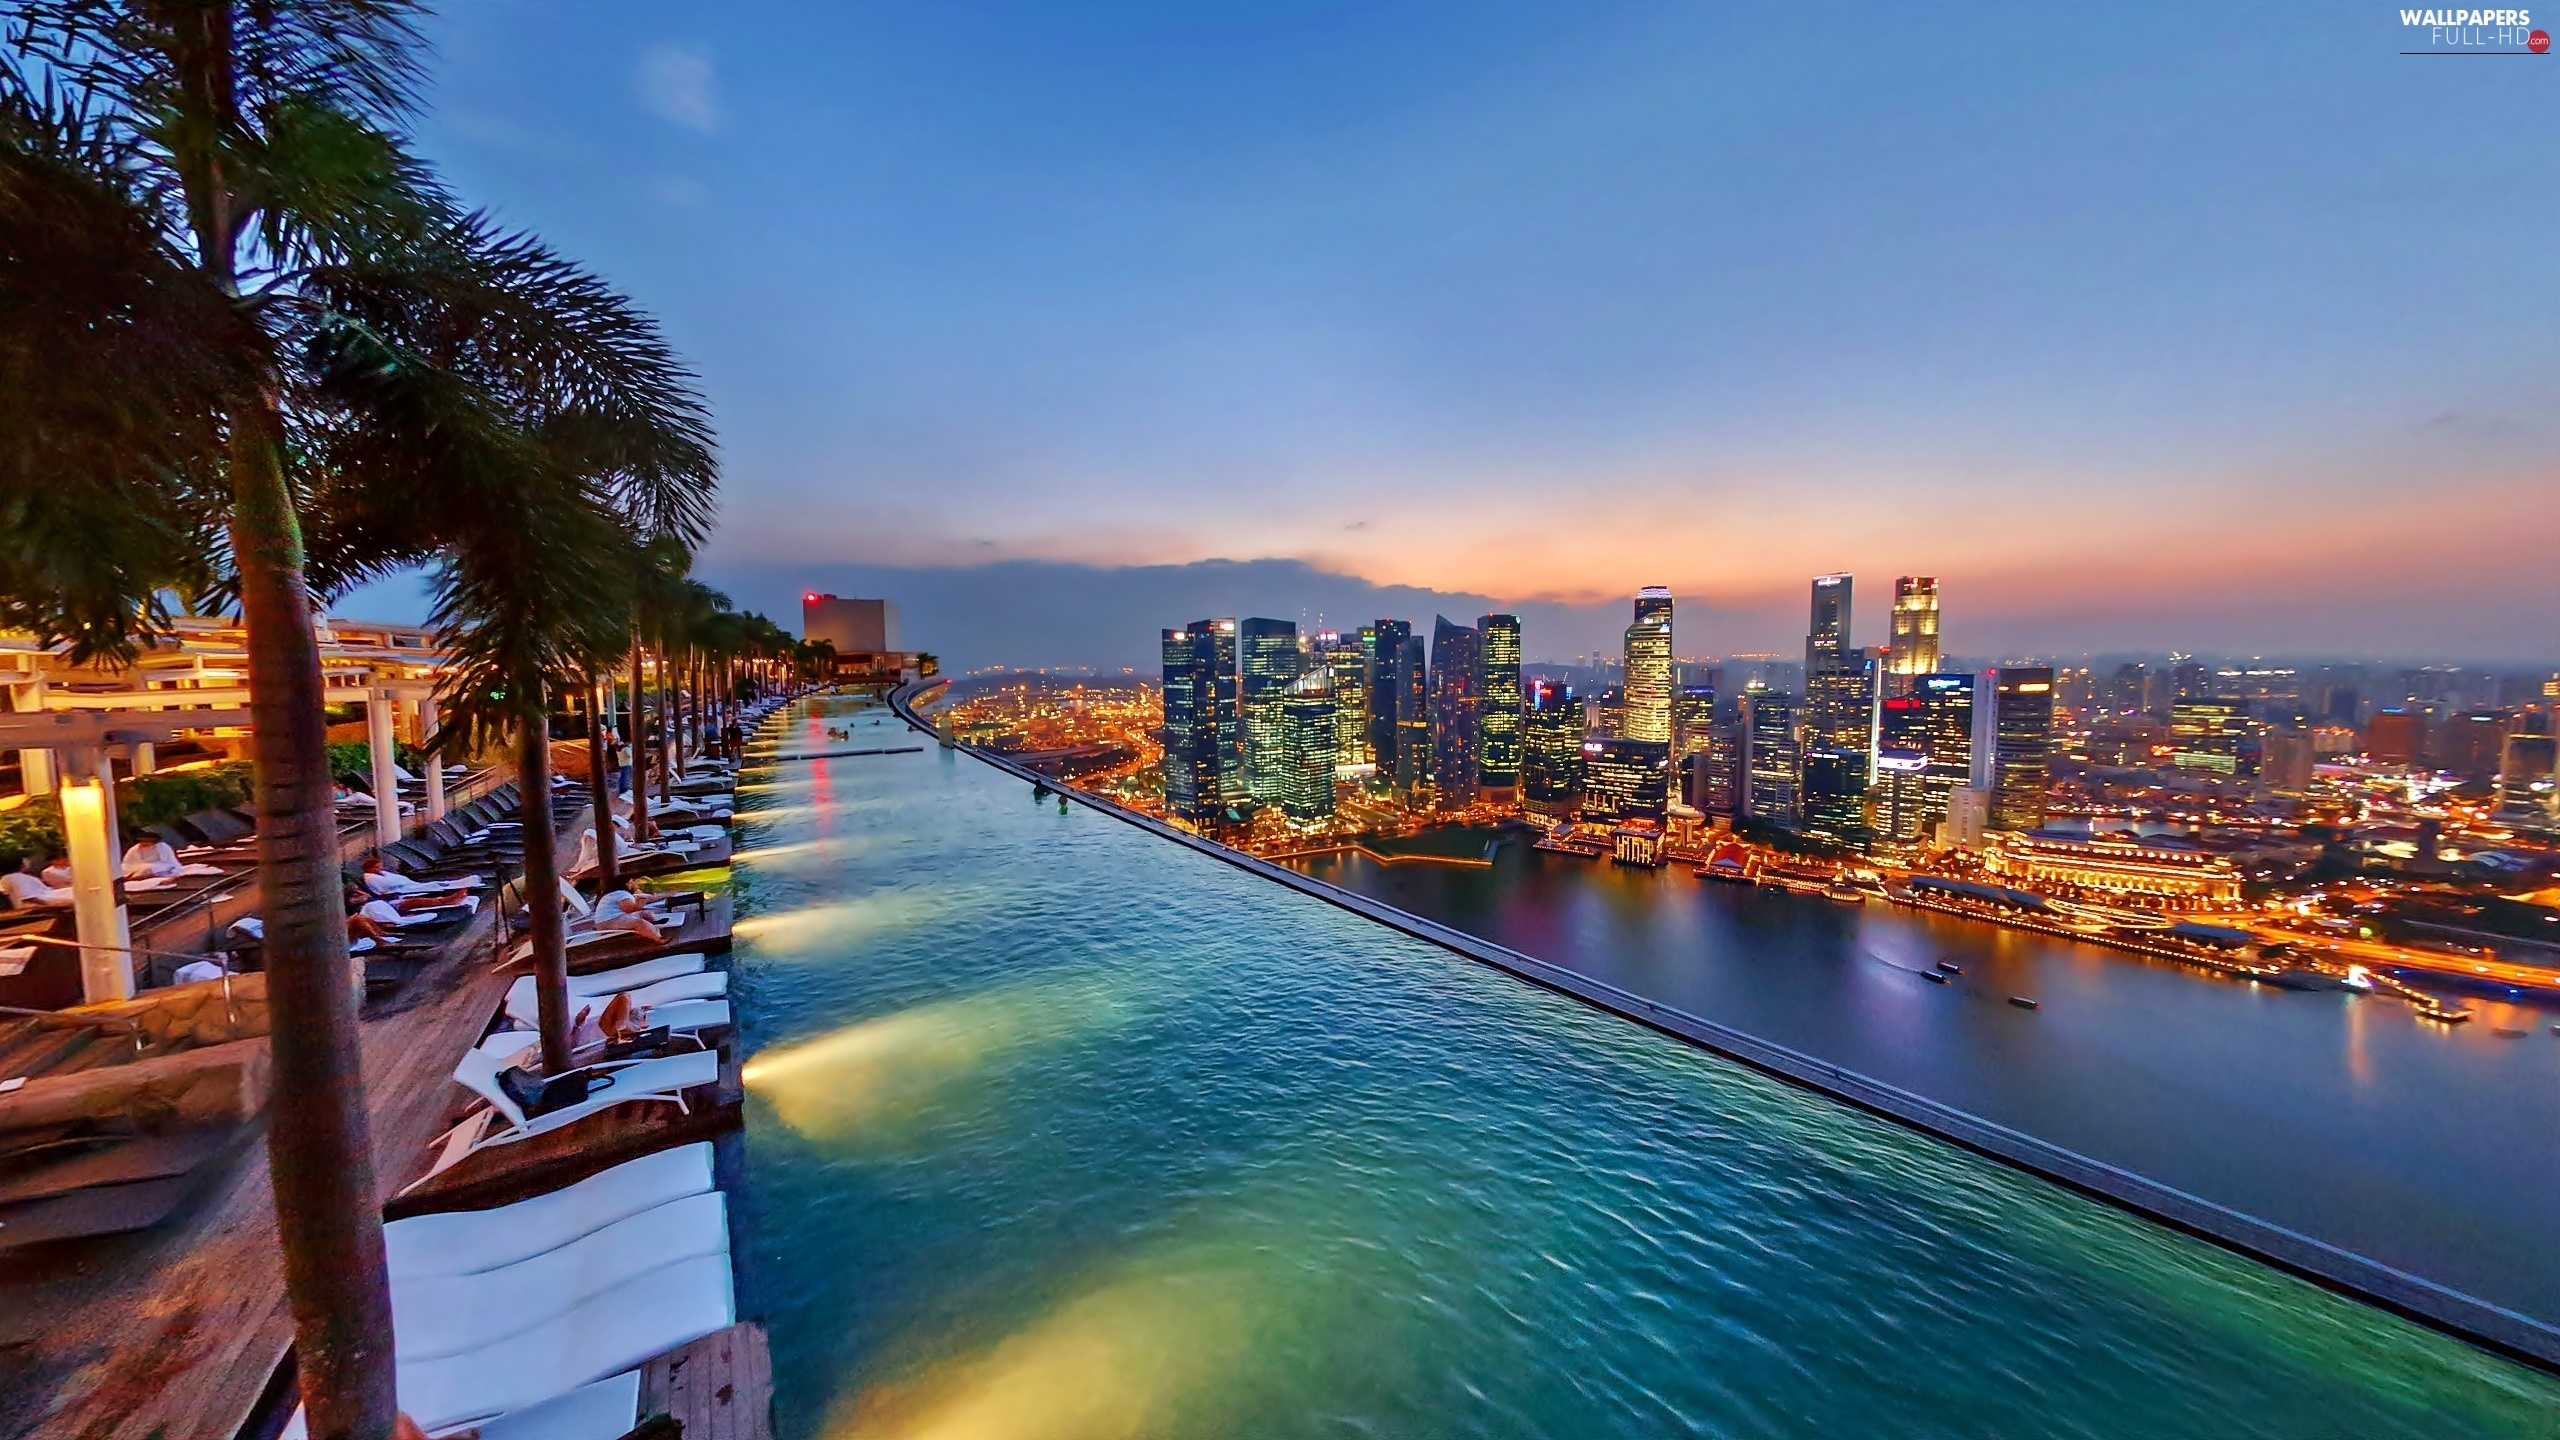 Bay, Stands, Hotel hall, Singapore, panorama, Pool, On Roof, night, Marina